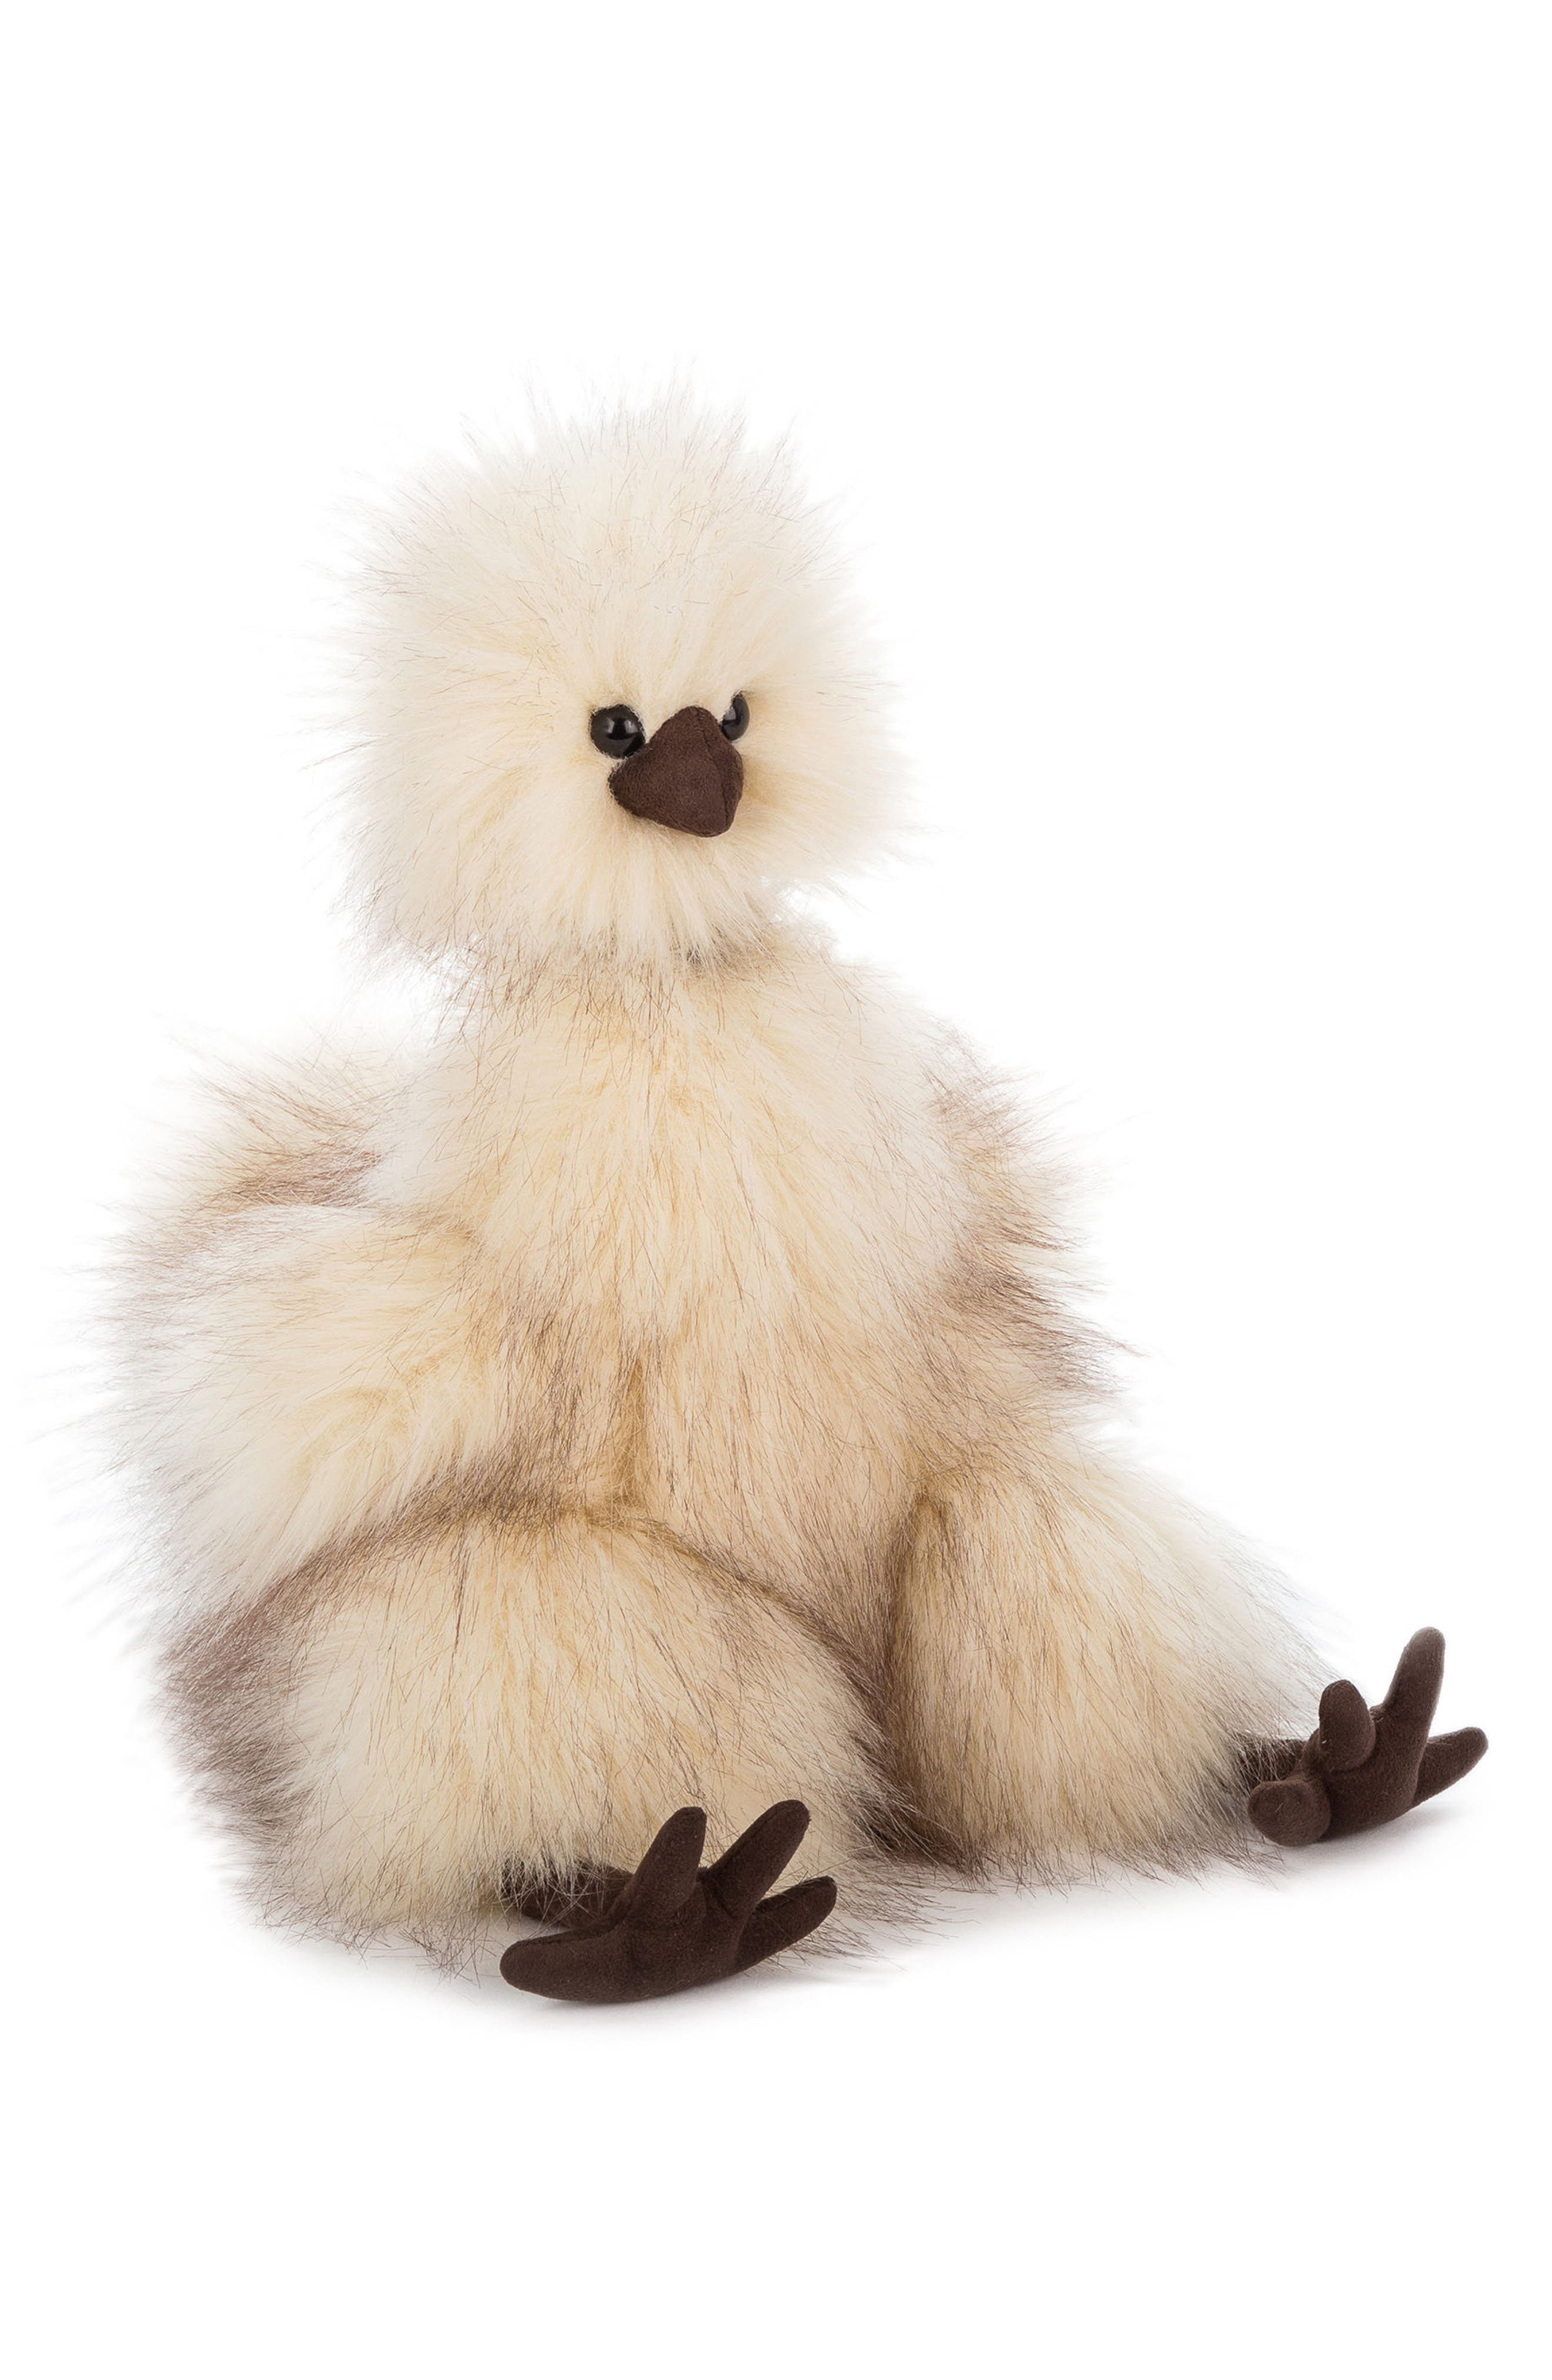 Silkie Chicken Stuffed Toy,                             Main thumbnail 1, color,                             Cream